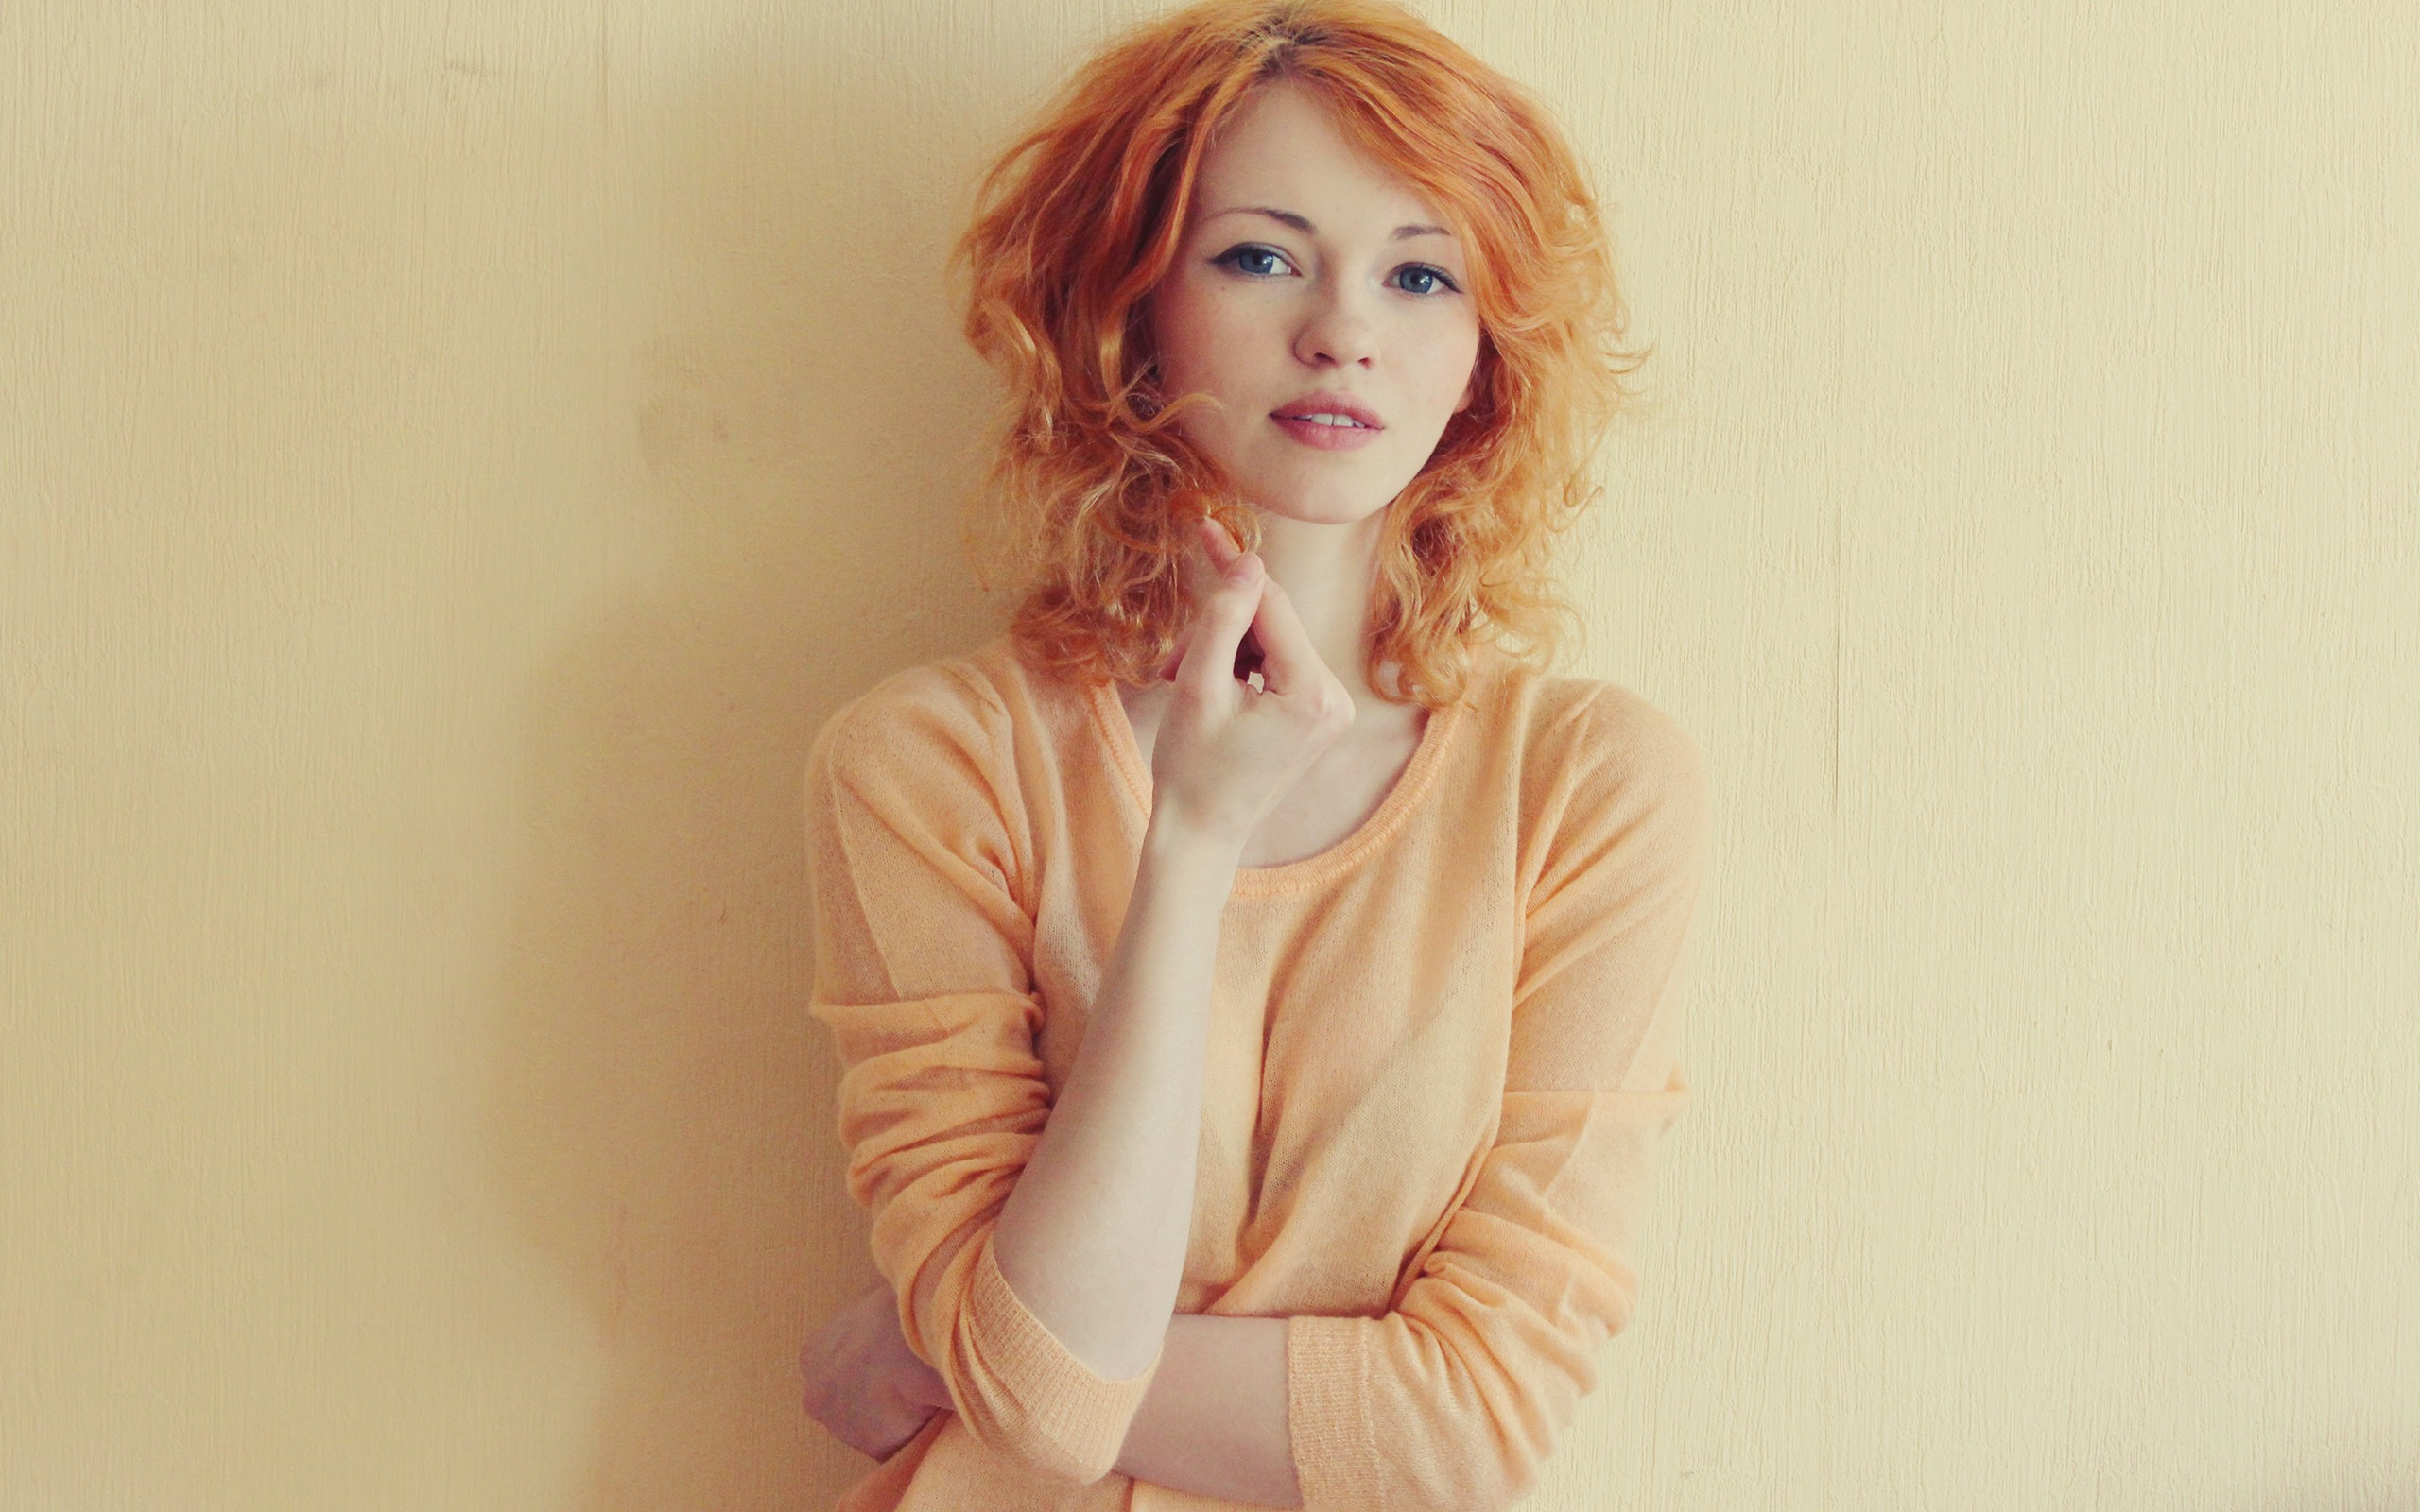 Hot Redheads with Blue Eyes